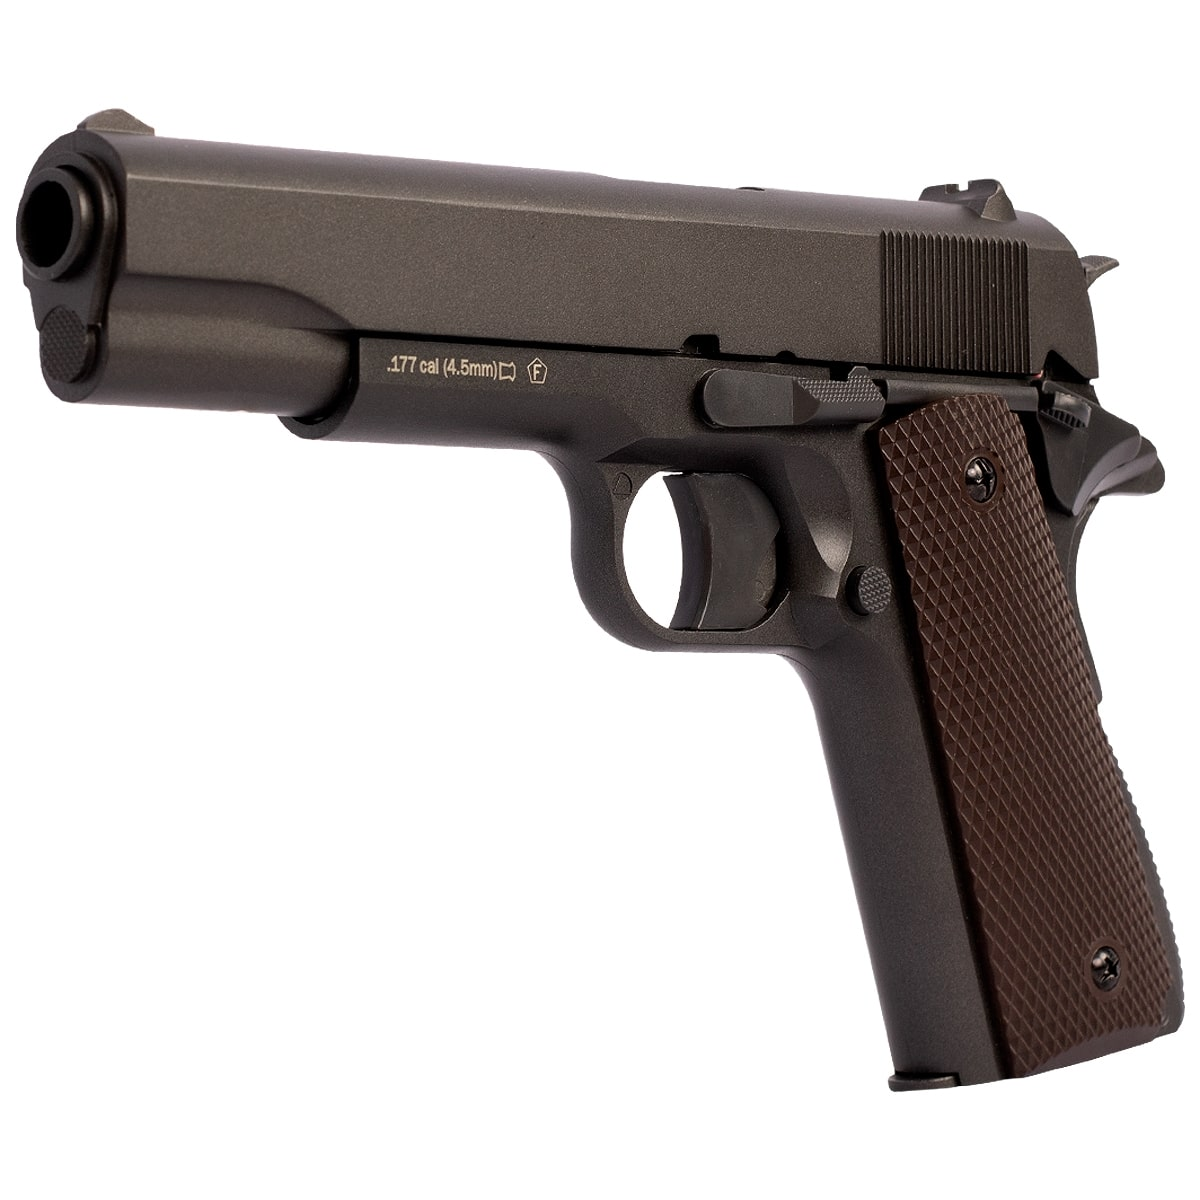 PISTOLA DE CHUMBINHO CO2 M1911 METAL 4.5MM - KWC